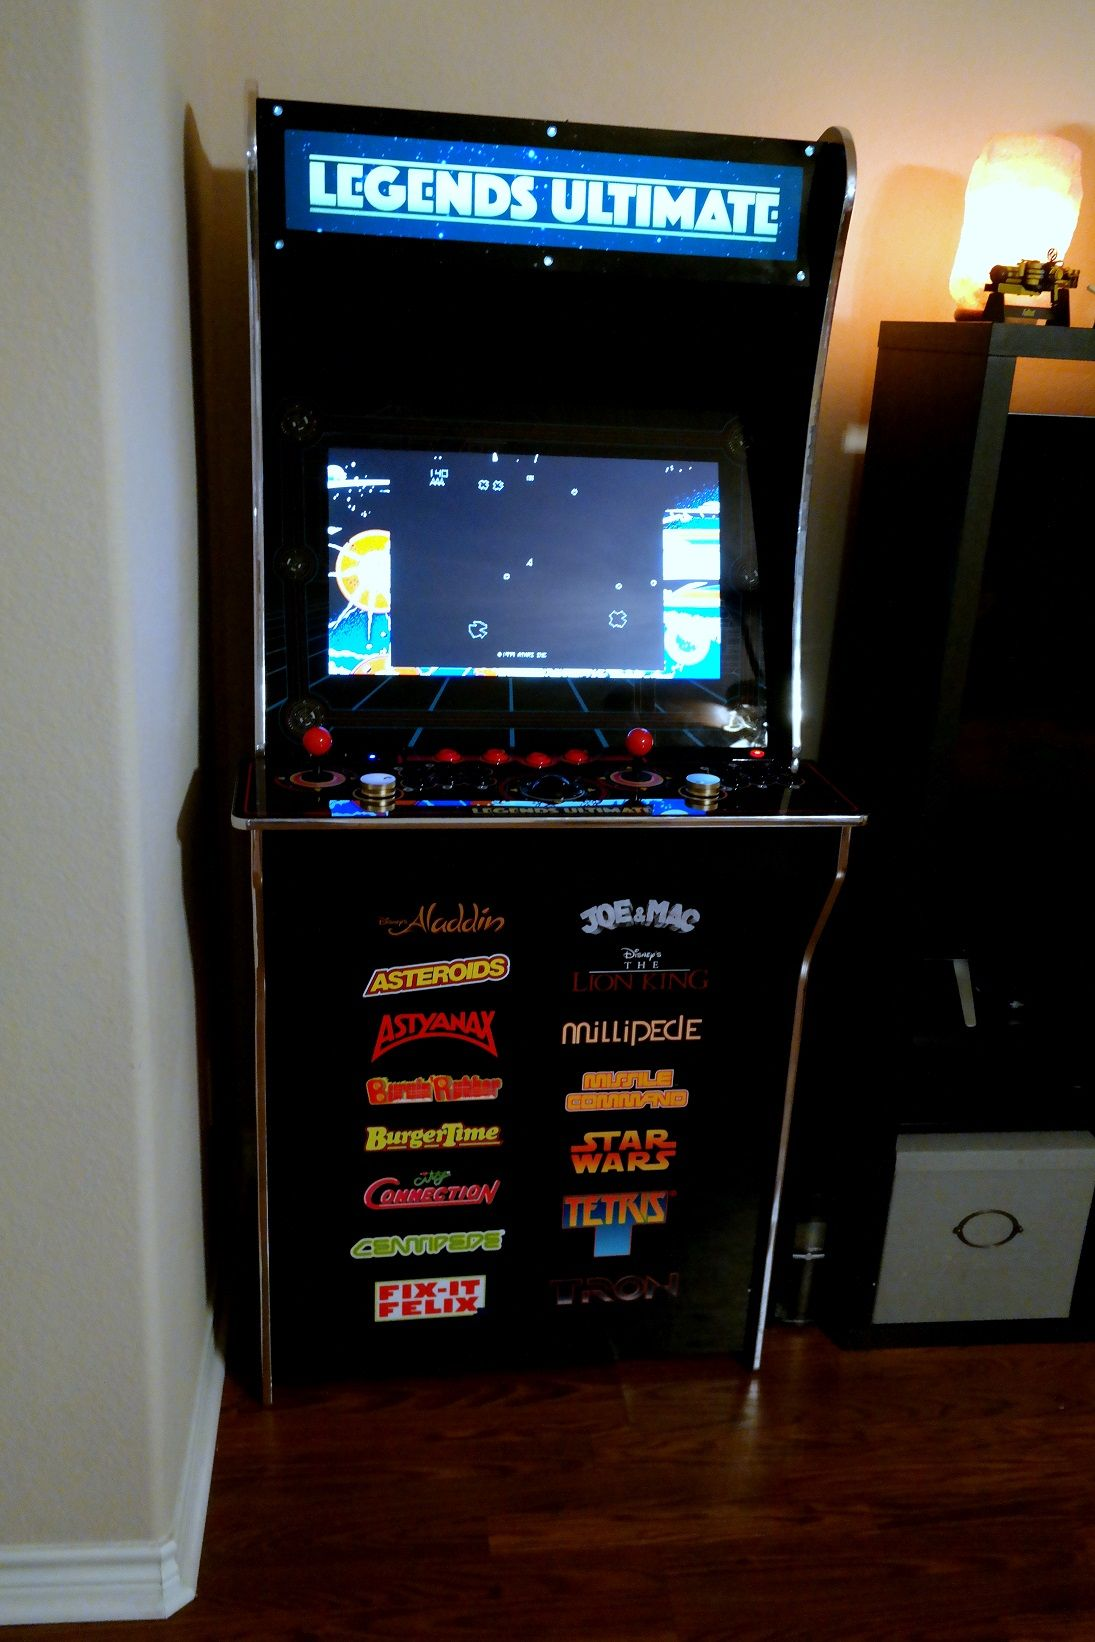 Pin by Sierra V. on Rooms in 2020 Arcade games, Arcade